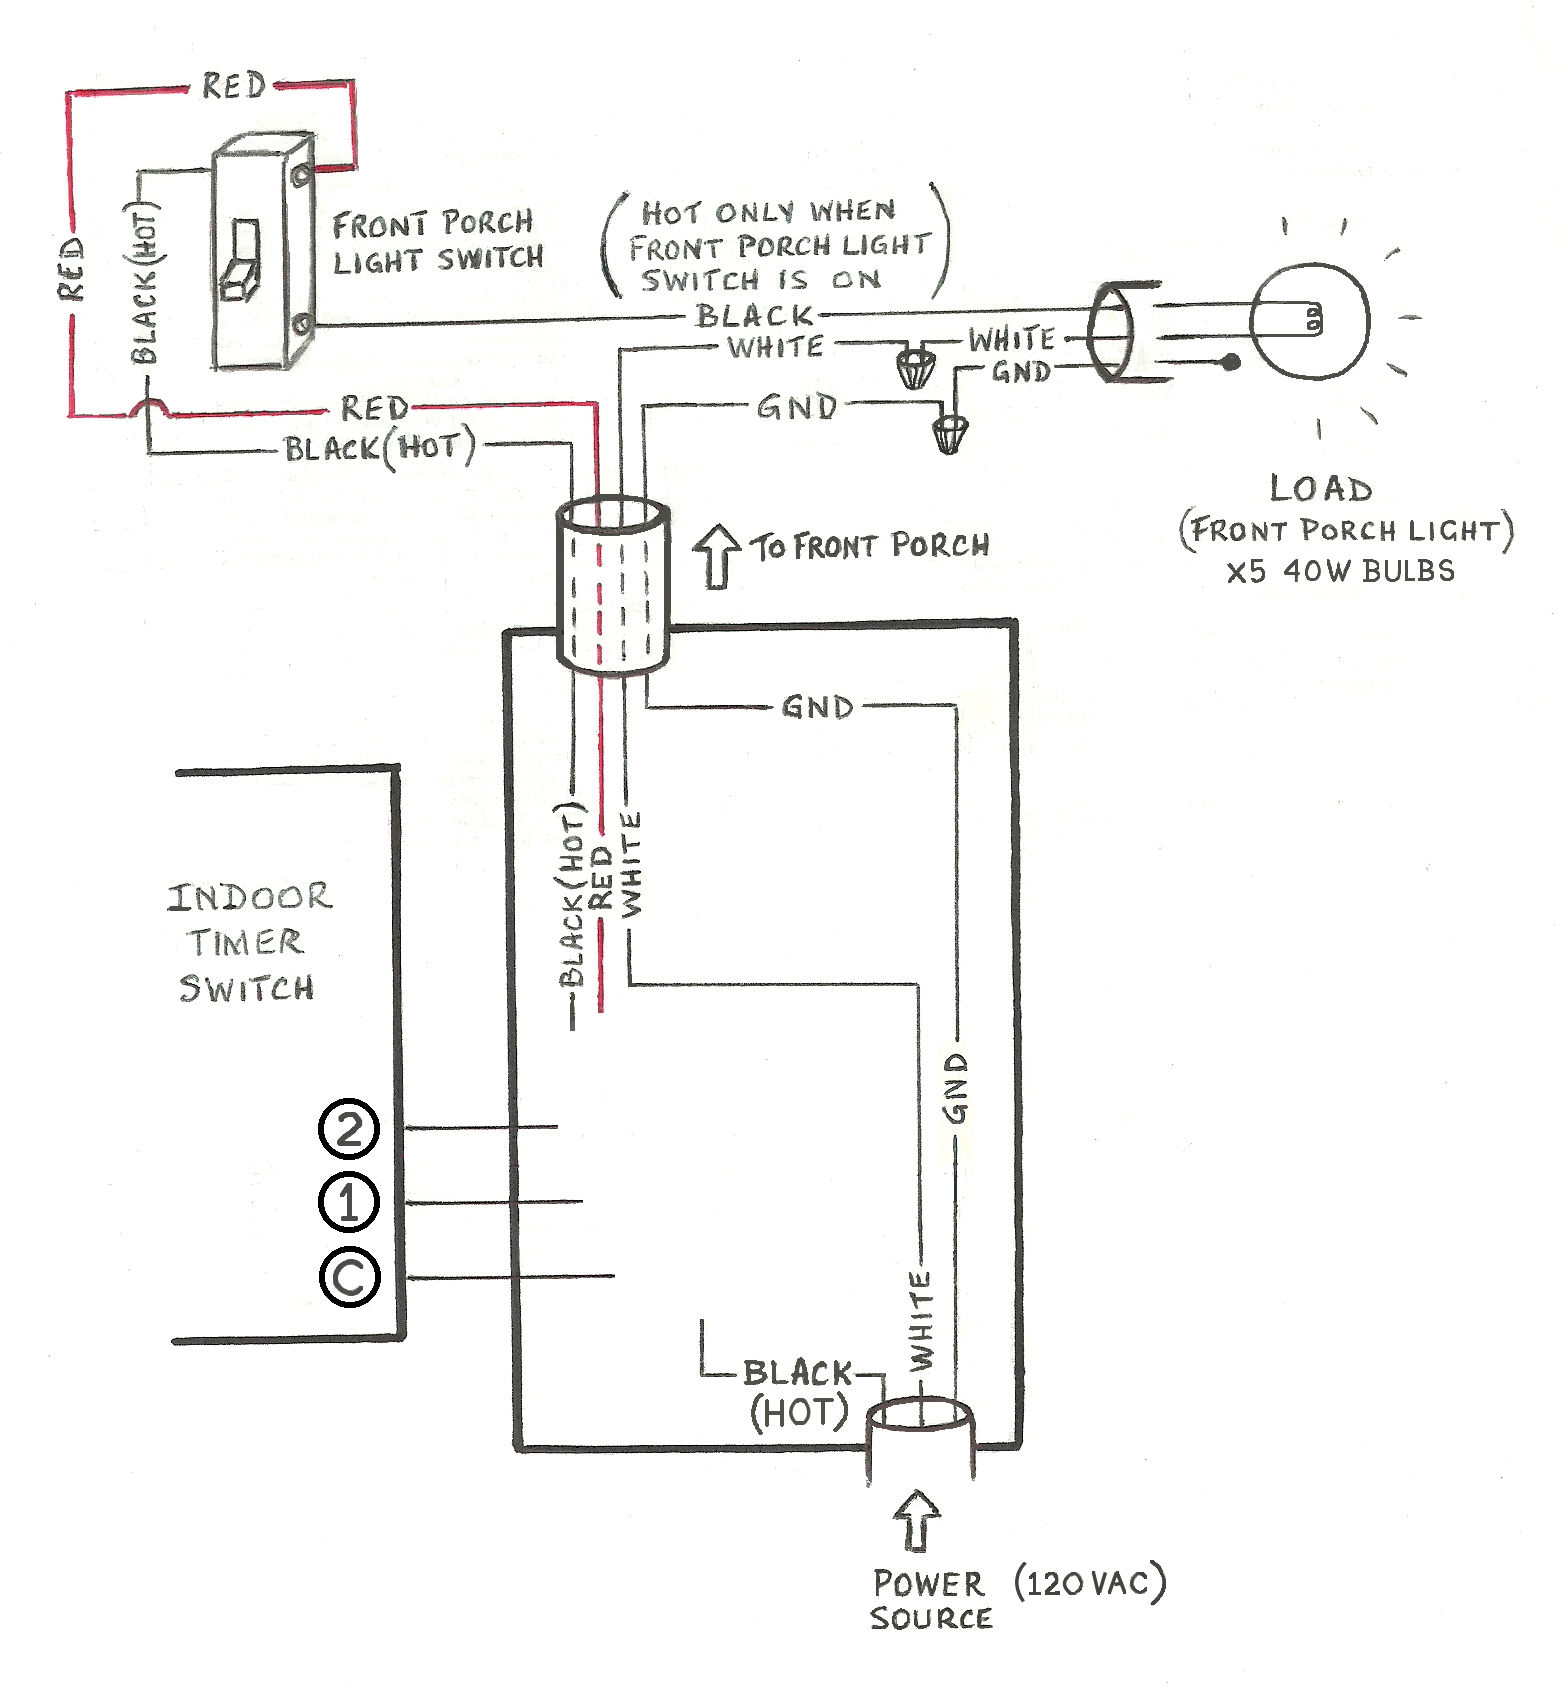 hight resolution of 125v switch wiring diagram wiring diagram schema img motor starter wiring diagram 125v switch wiring diagram